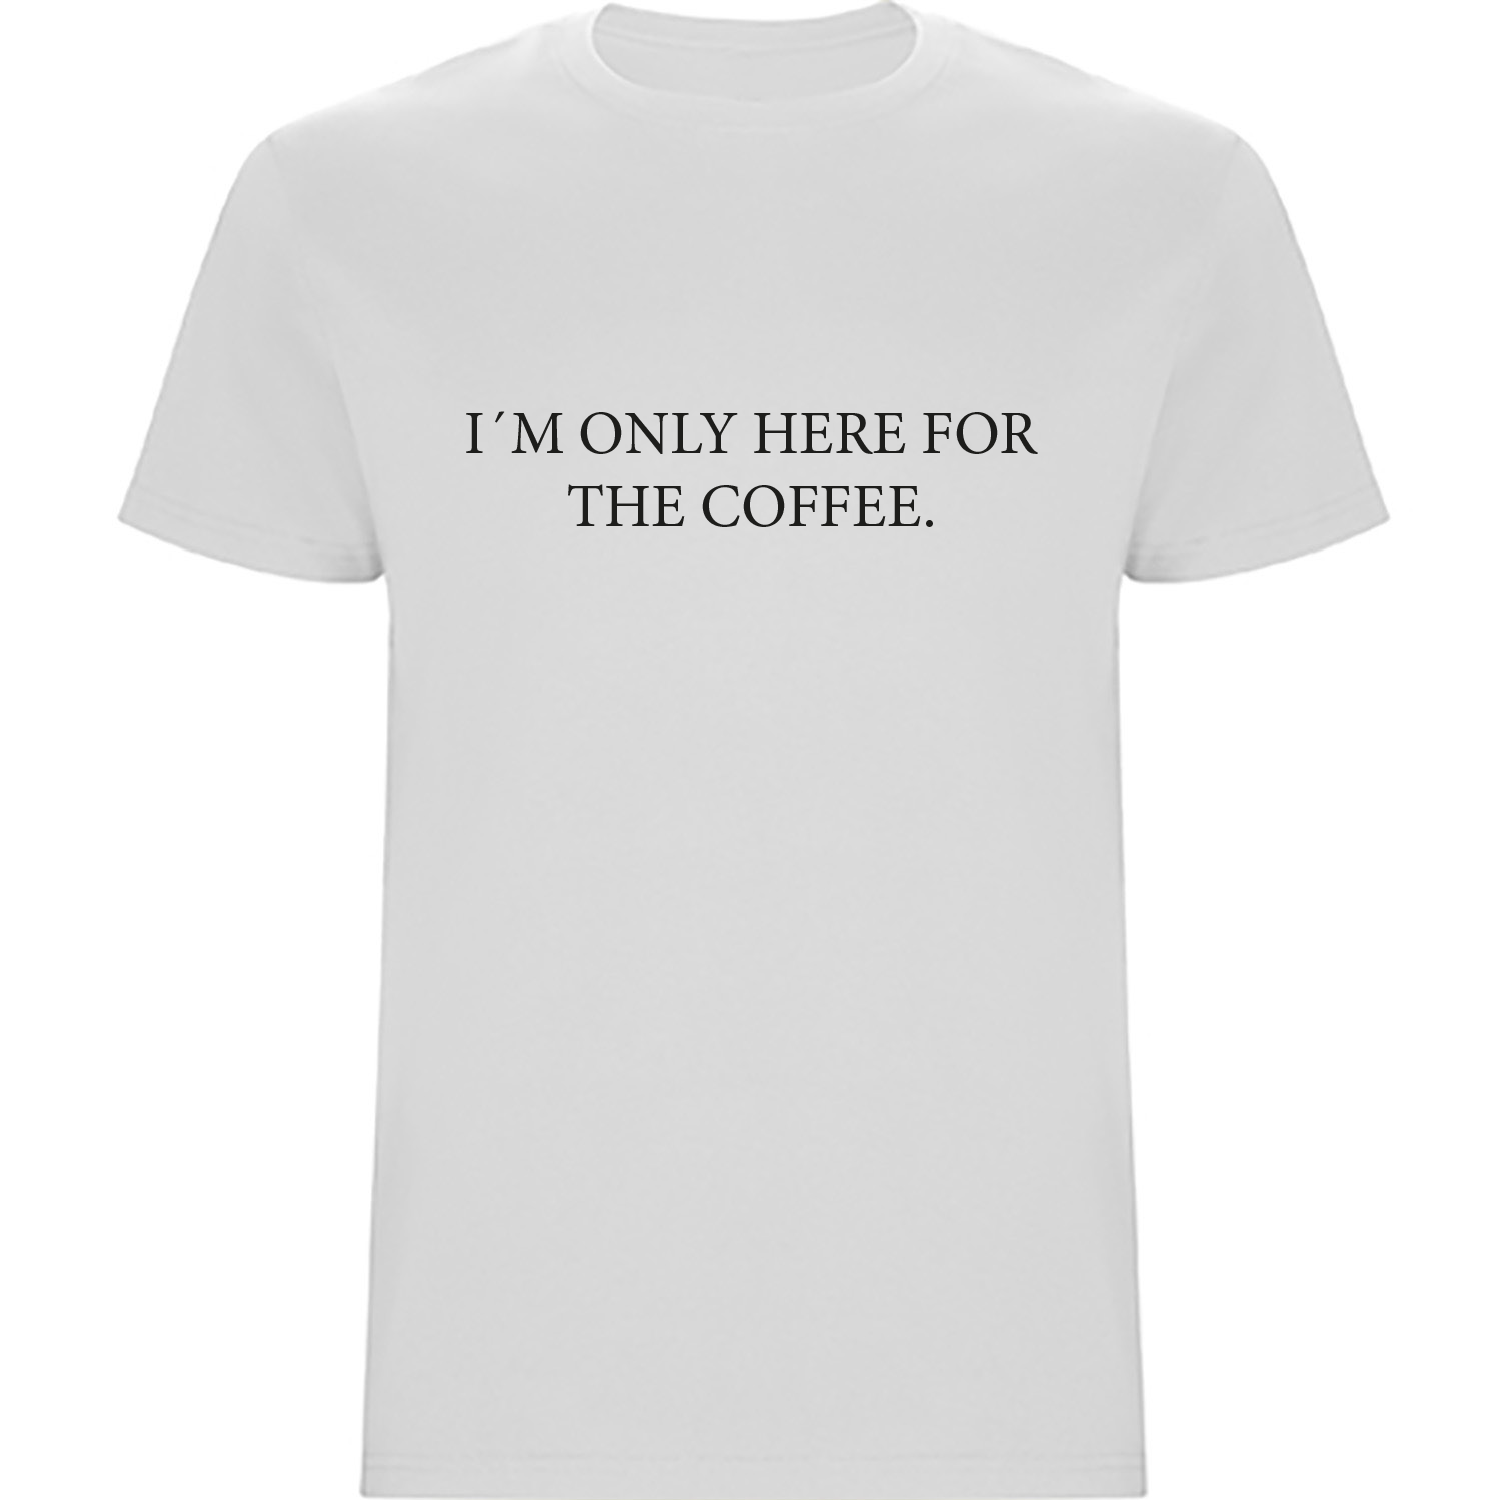 Frauen T-Shirt (Loose Fit) - Only here for coffee